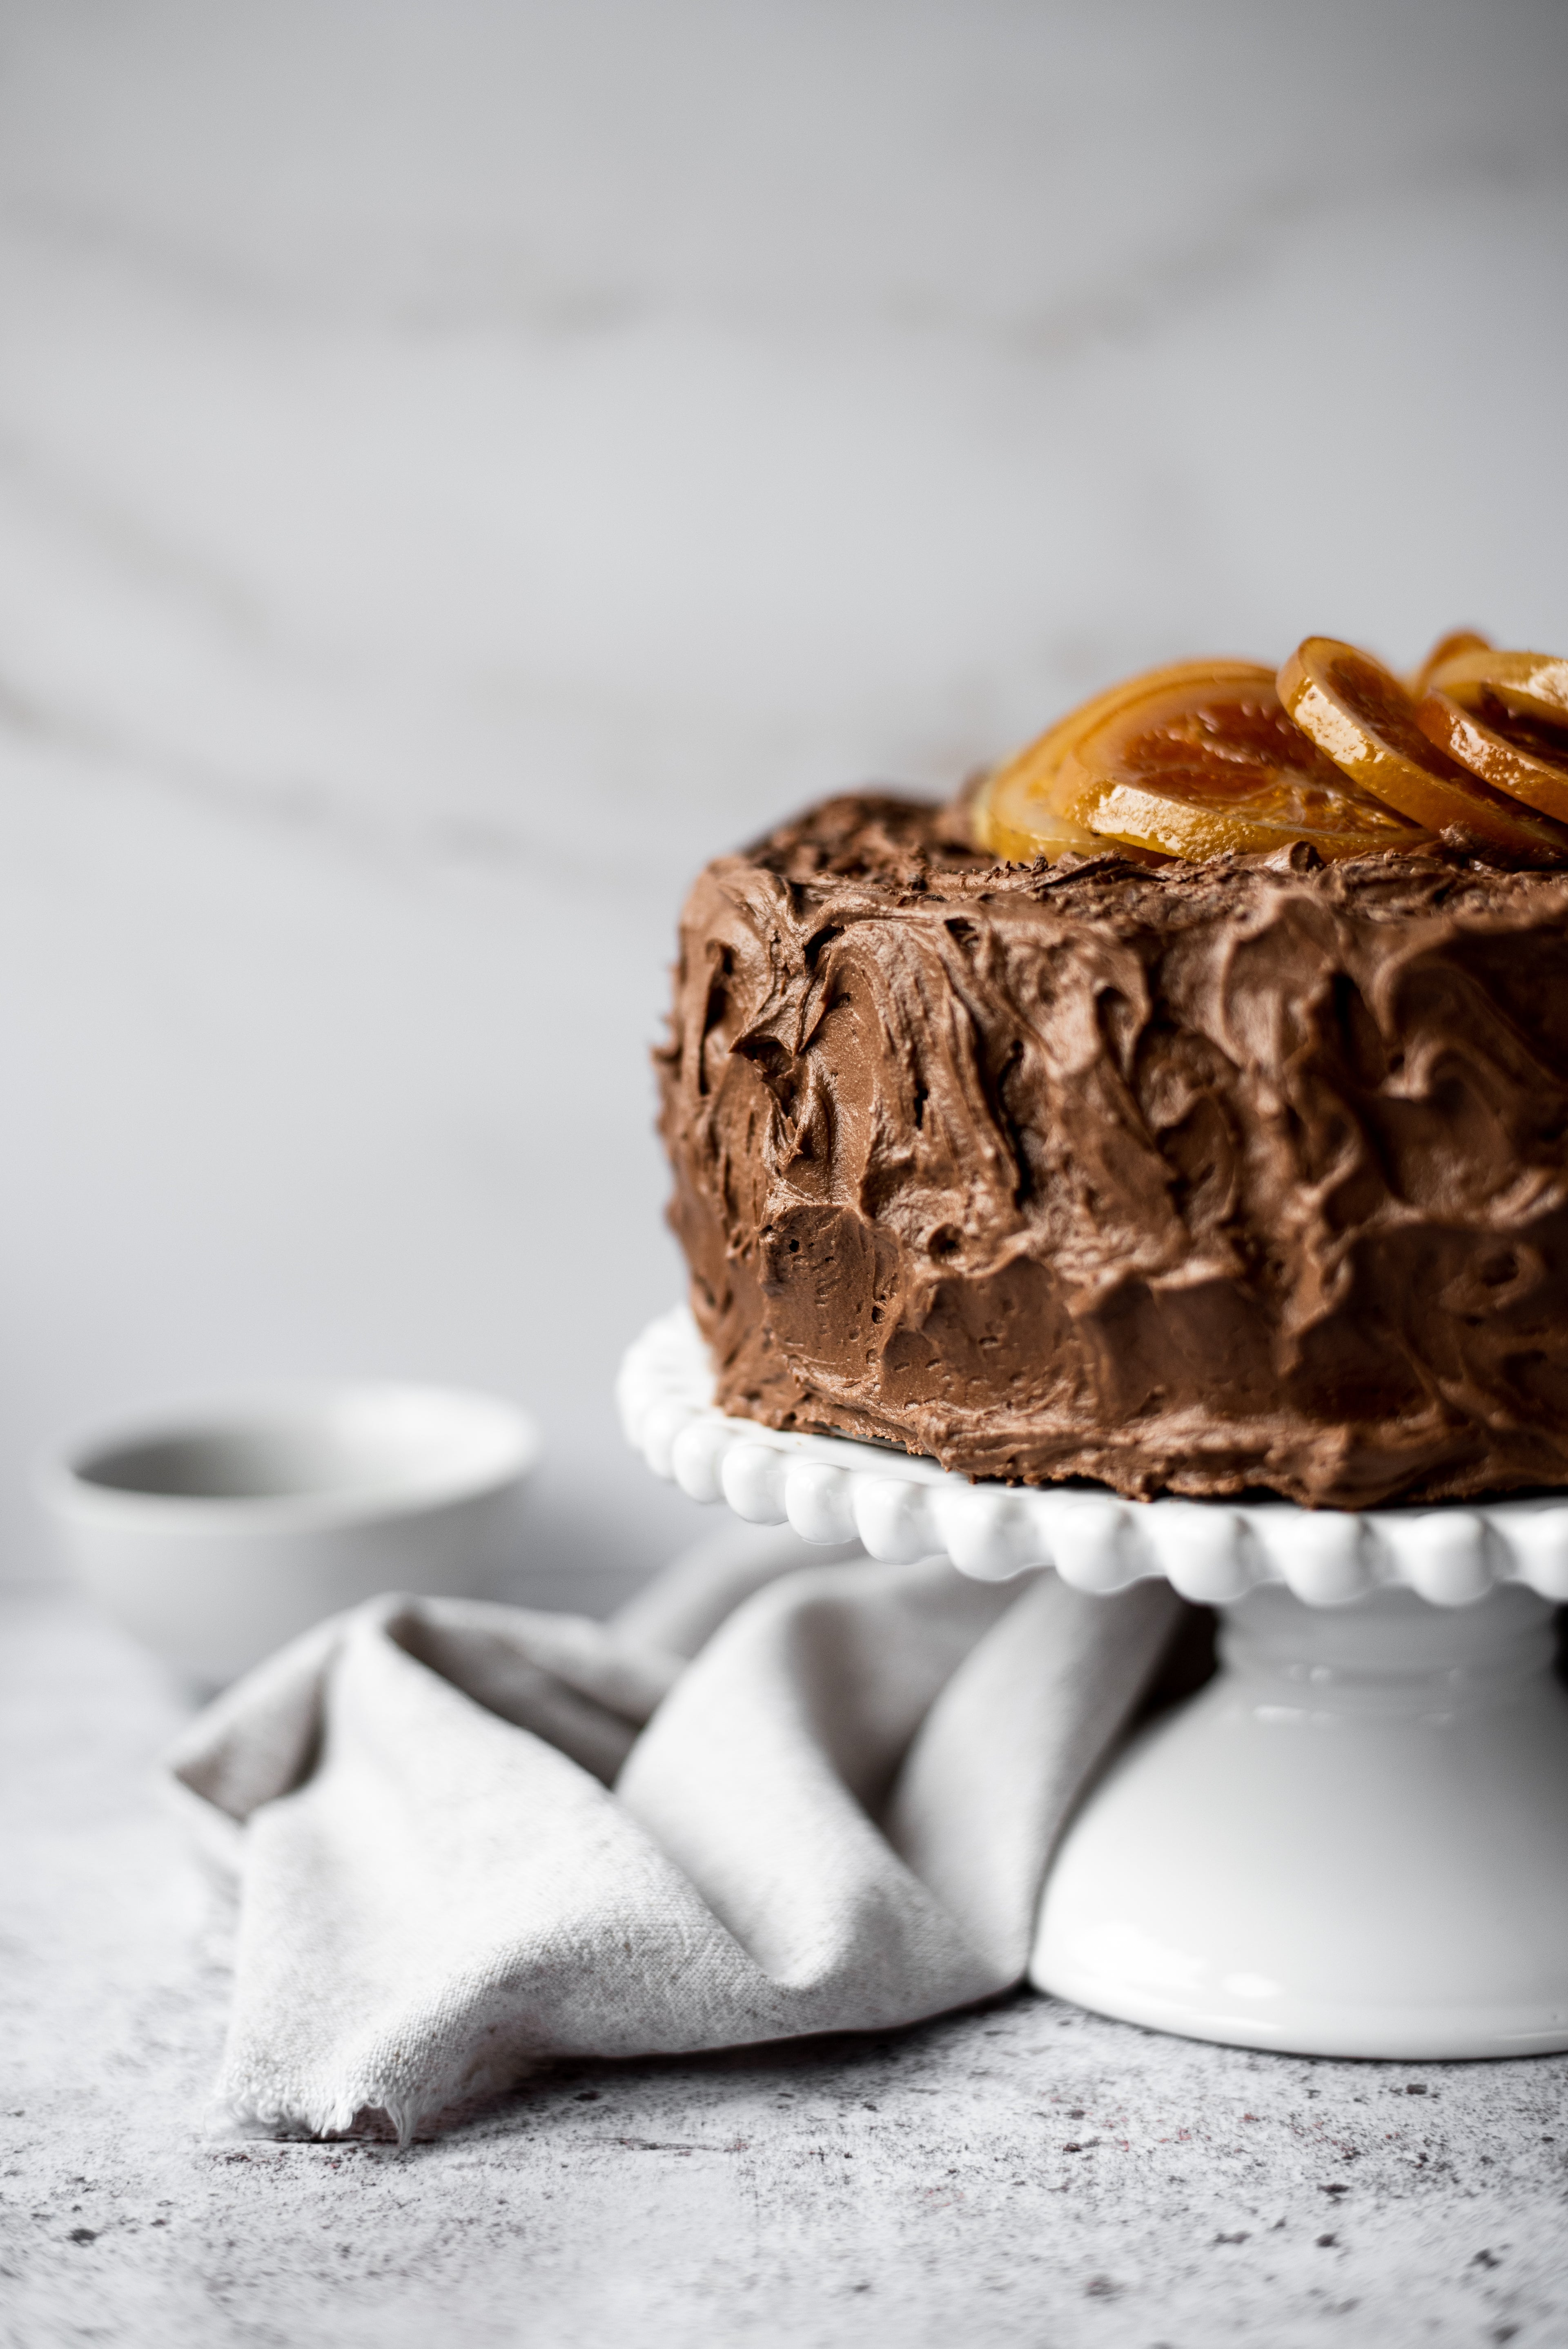 chocolate cake with orange slices on top